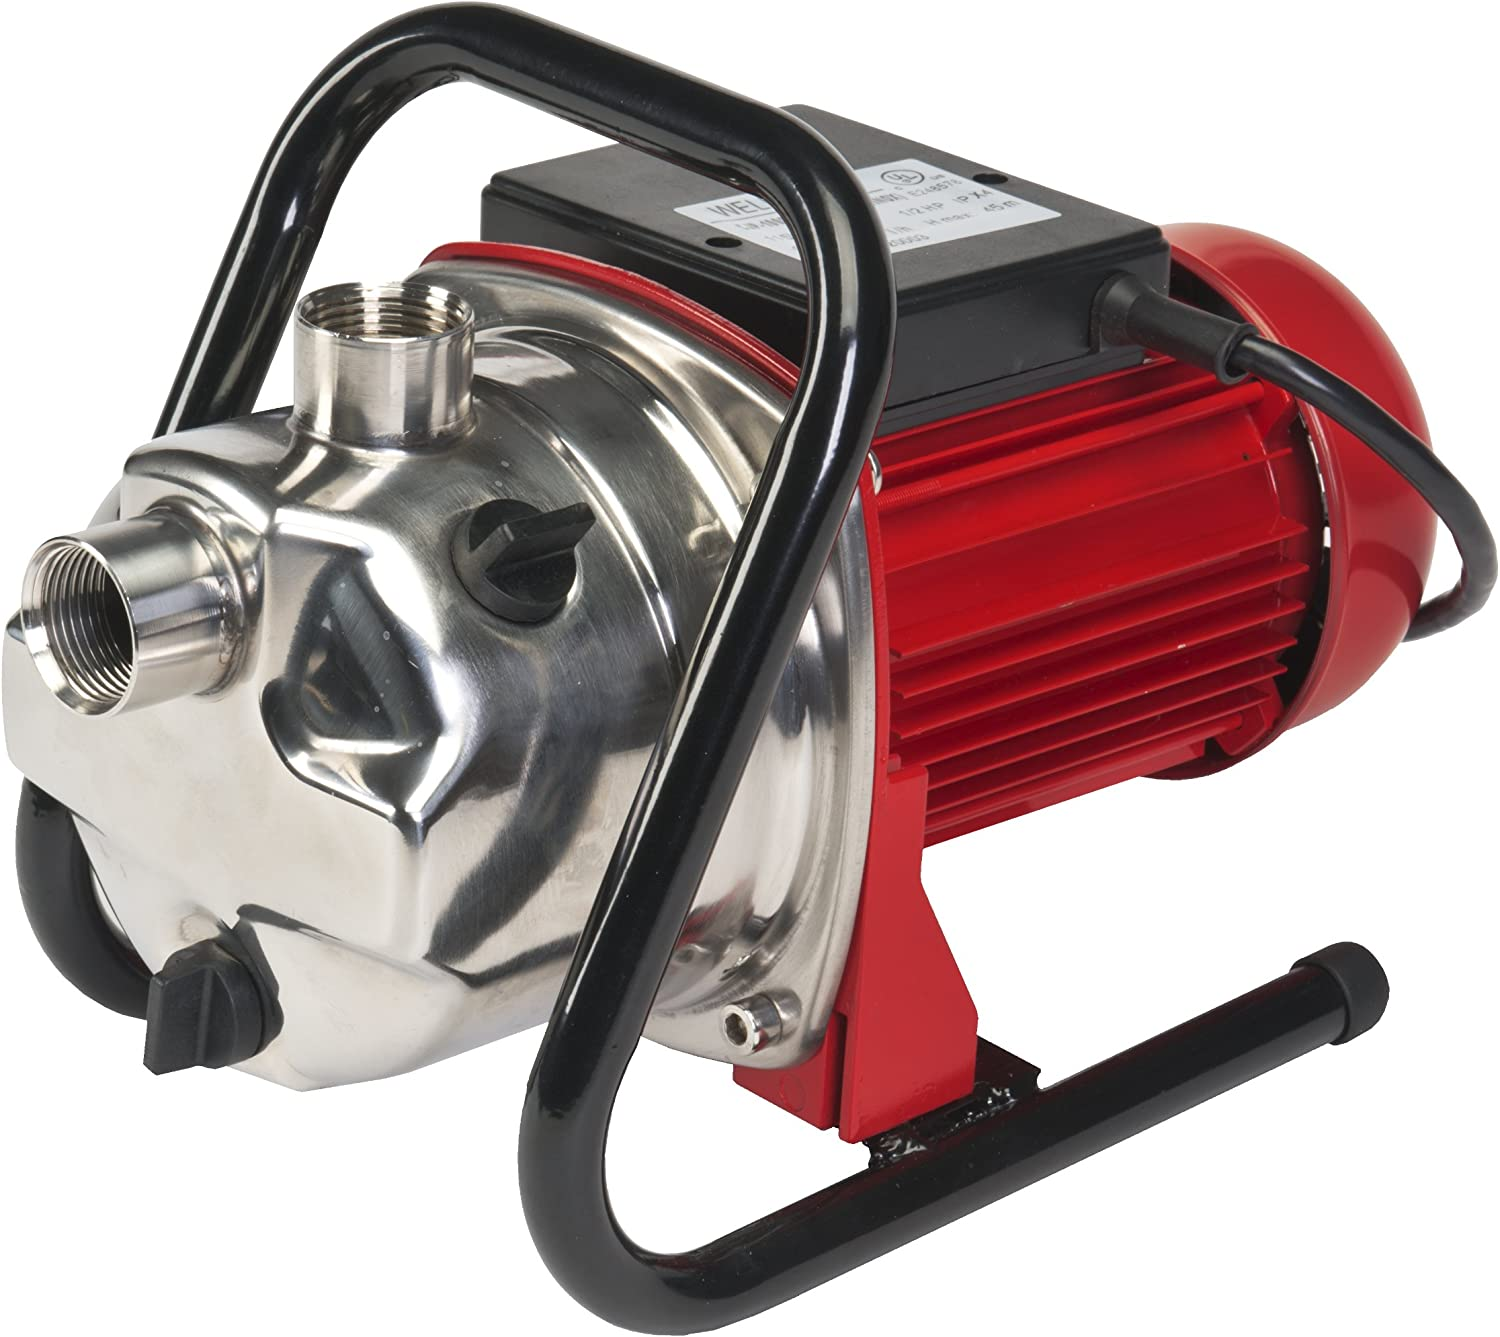 Red Lion 614432 Stainless Steel Sprinkler Utility Pump